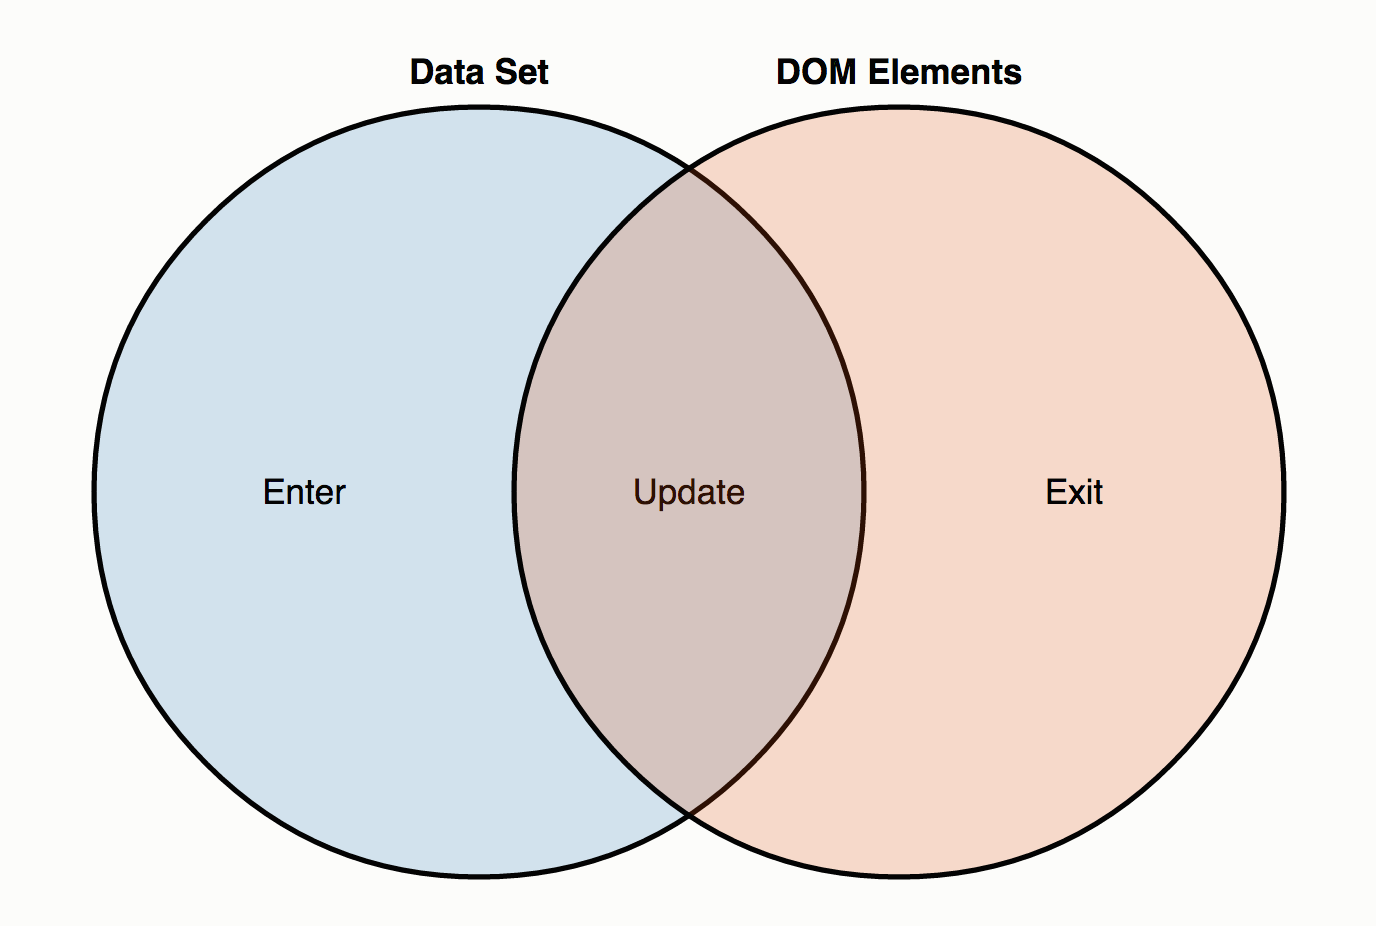 Venn diagram showing two intersecting sets, the first being DOM Elements and the second being Data Set. The intersection is labeled Update, DOM Elements alone is labeled Exit, and Data Set alone is labeled Enter.